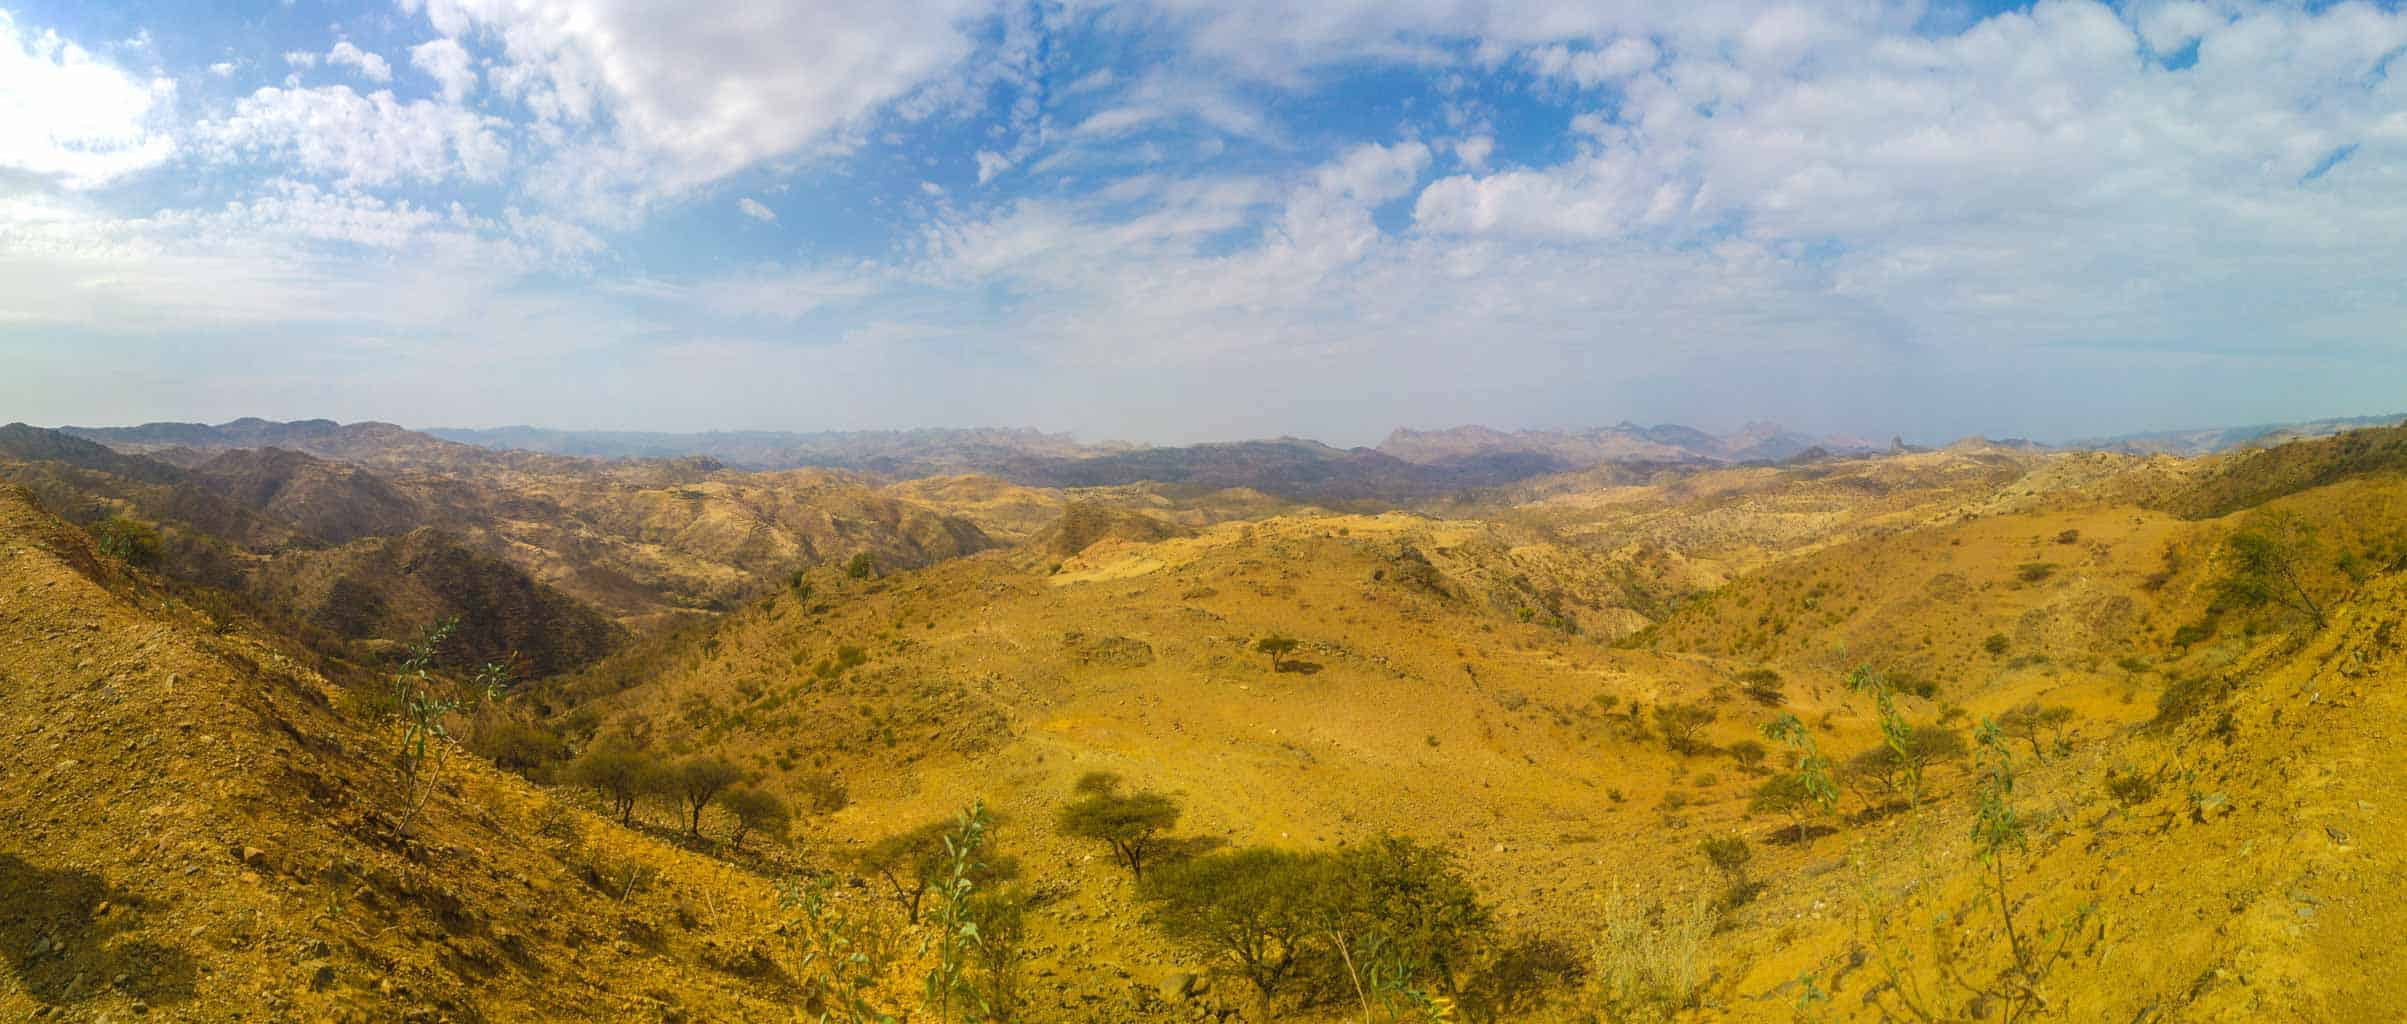 Typical landscape in the Eritrean highlands.